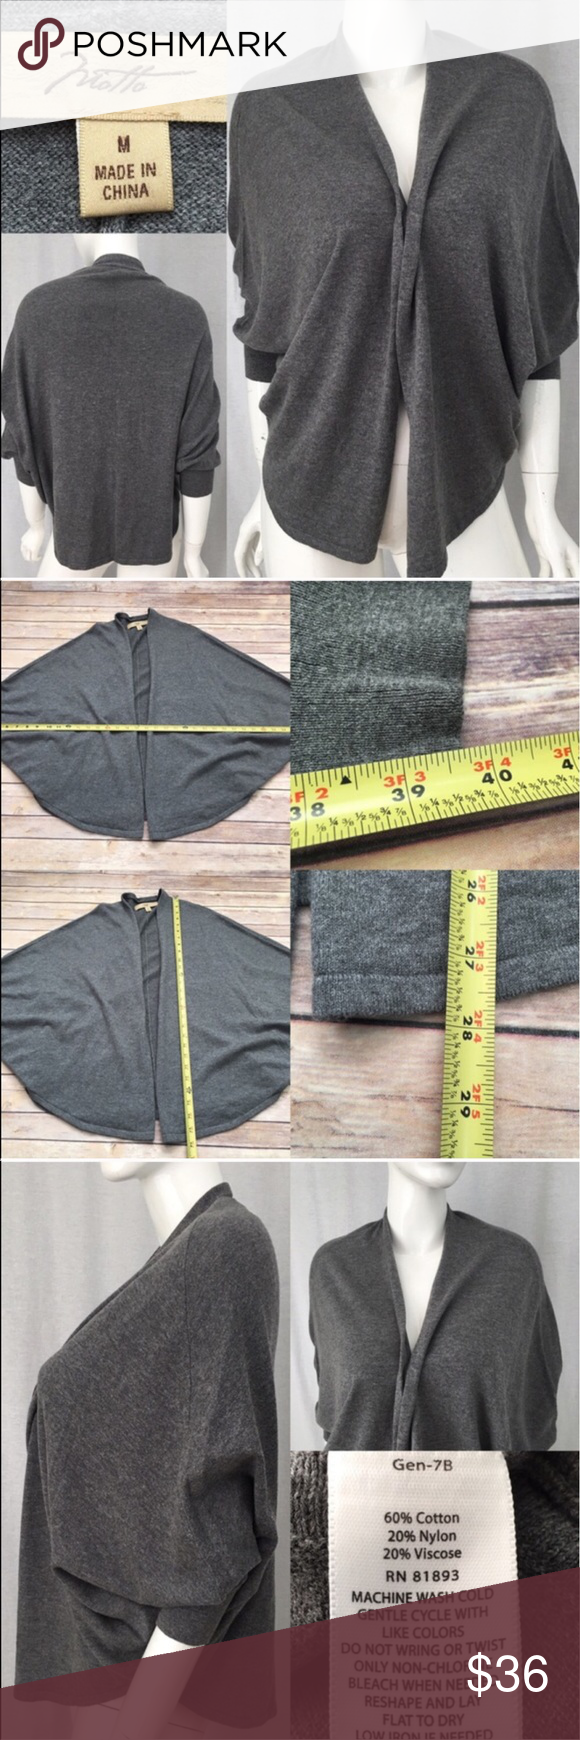 🎍Sz Medium Motto Batwing Gray Open Front Cardigan Measurements are in photos. Normal wash wear, no flaws. D2  I do not comment to my buyers after purchases, due to their privacy. If you would like any reassurance after your purchase that I did receive your order, please feel free to comment on the listing and I will promptly respond.   I ship everyday and I always package safely. Thank you for shopping my closet! Motto Sweaters Cardigans